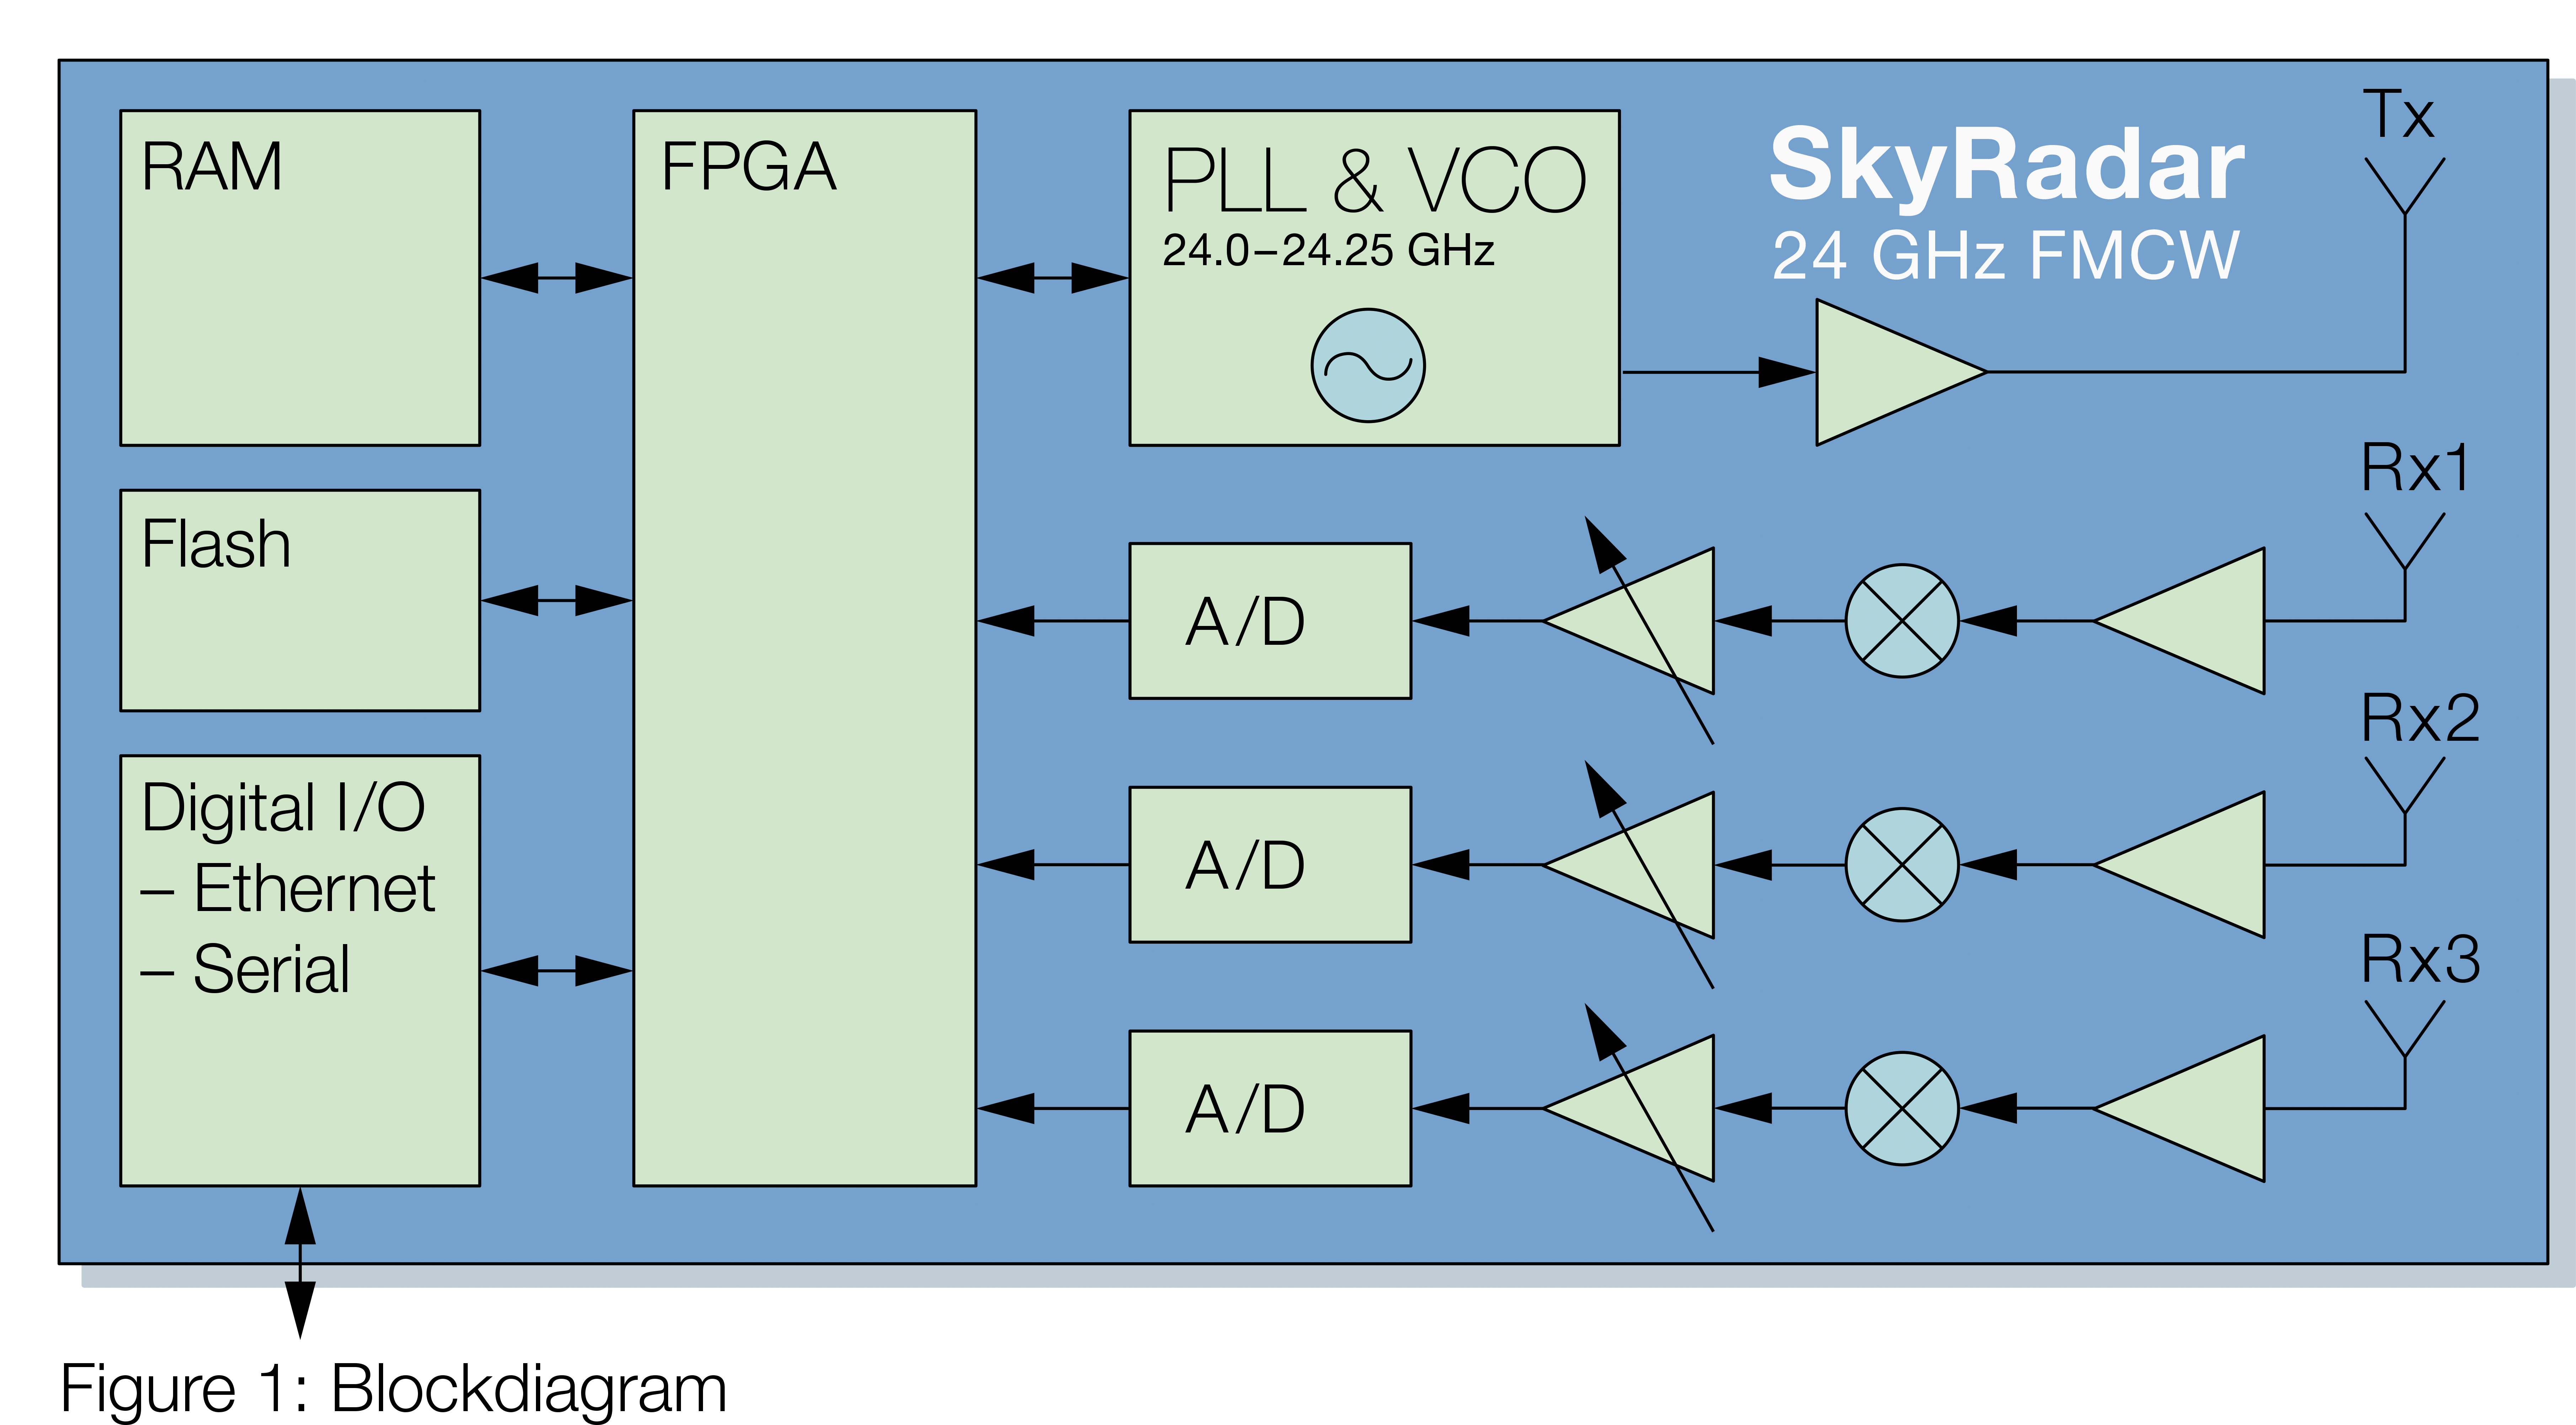 SkyRadar-24-GHz-FMCW-training-radar